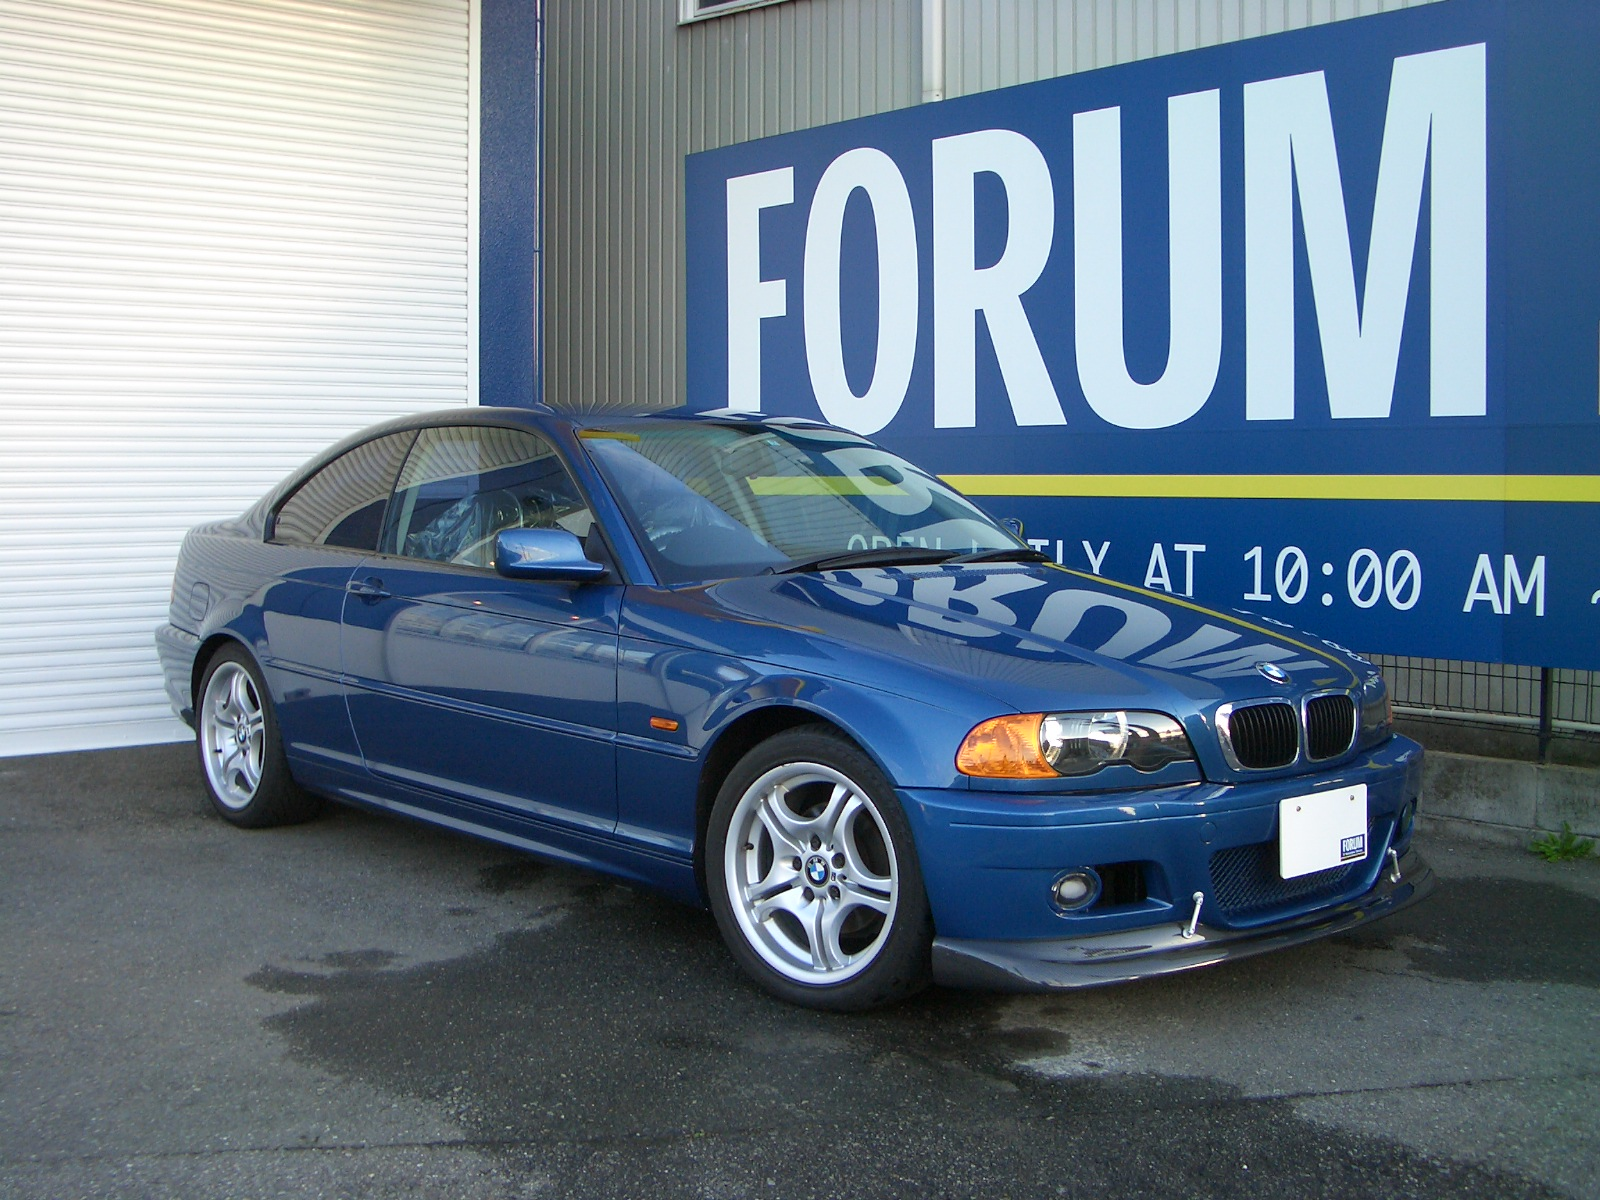 BMW <font size=4 color=red face=Impact>SOLD OUT</font> 318Ci